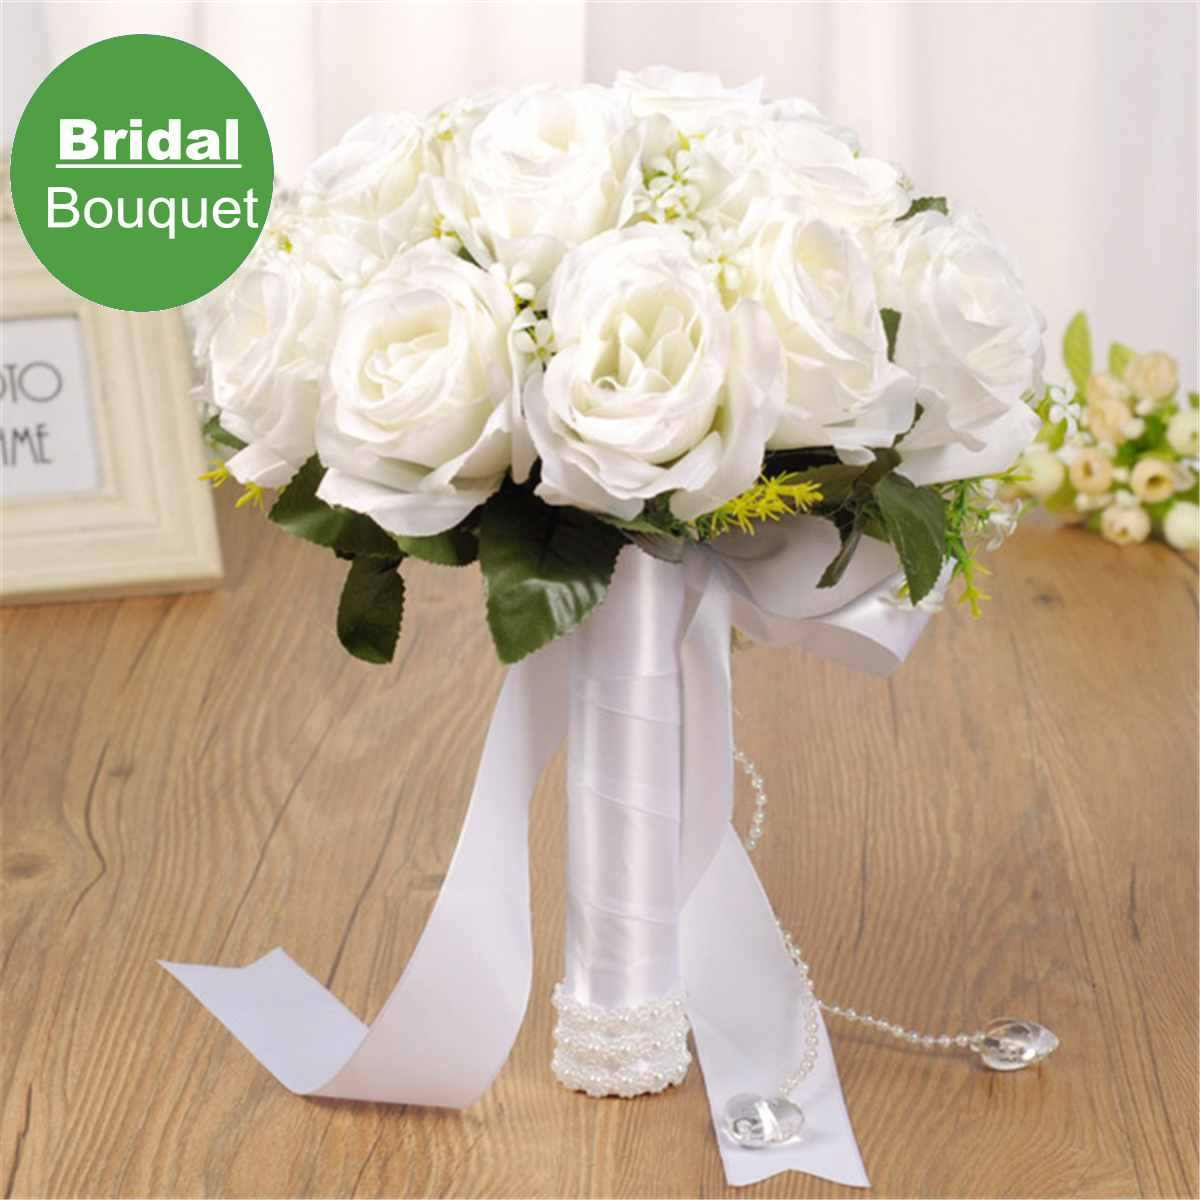 Artificial Handmade Bridal Bouquet Ribbon Flowers Bunch Marriage Engagement Party Supplies Home Ornaments Wedding Decoration